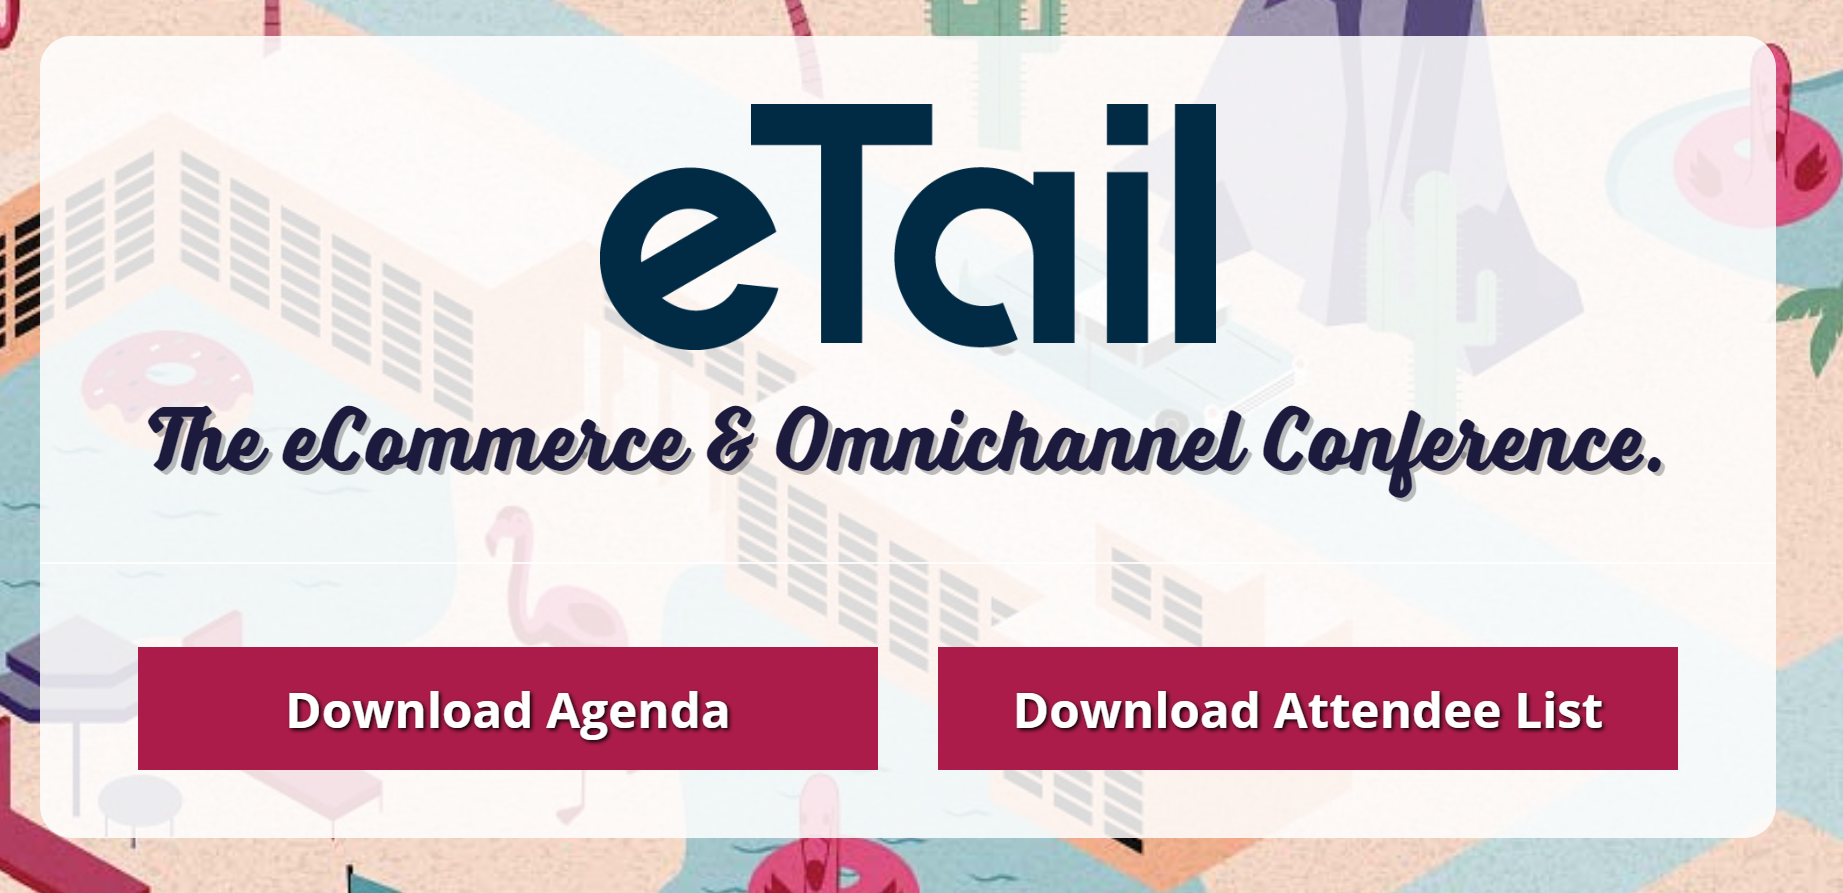 The Top Ecommerce Conferences and Events in 2019